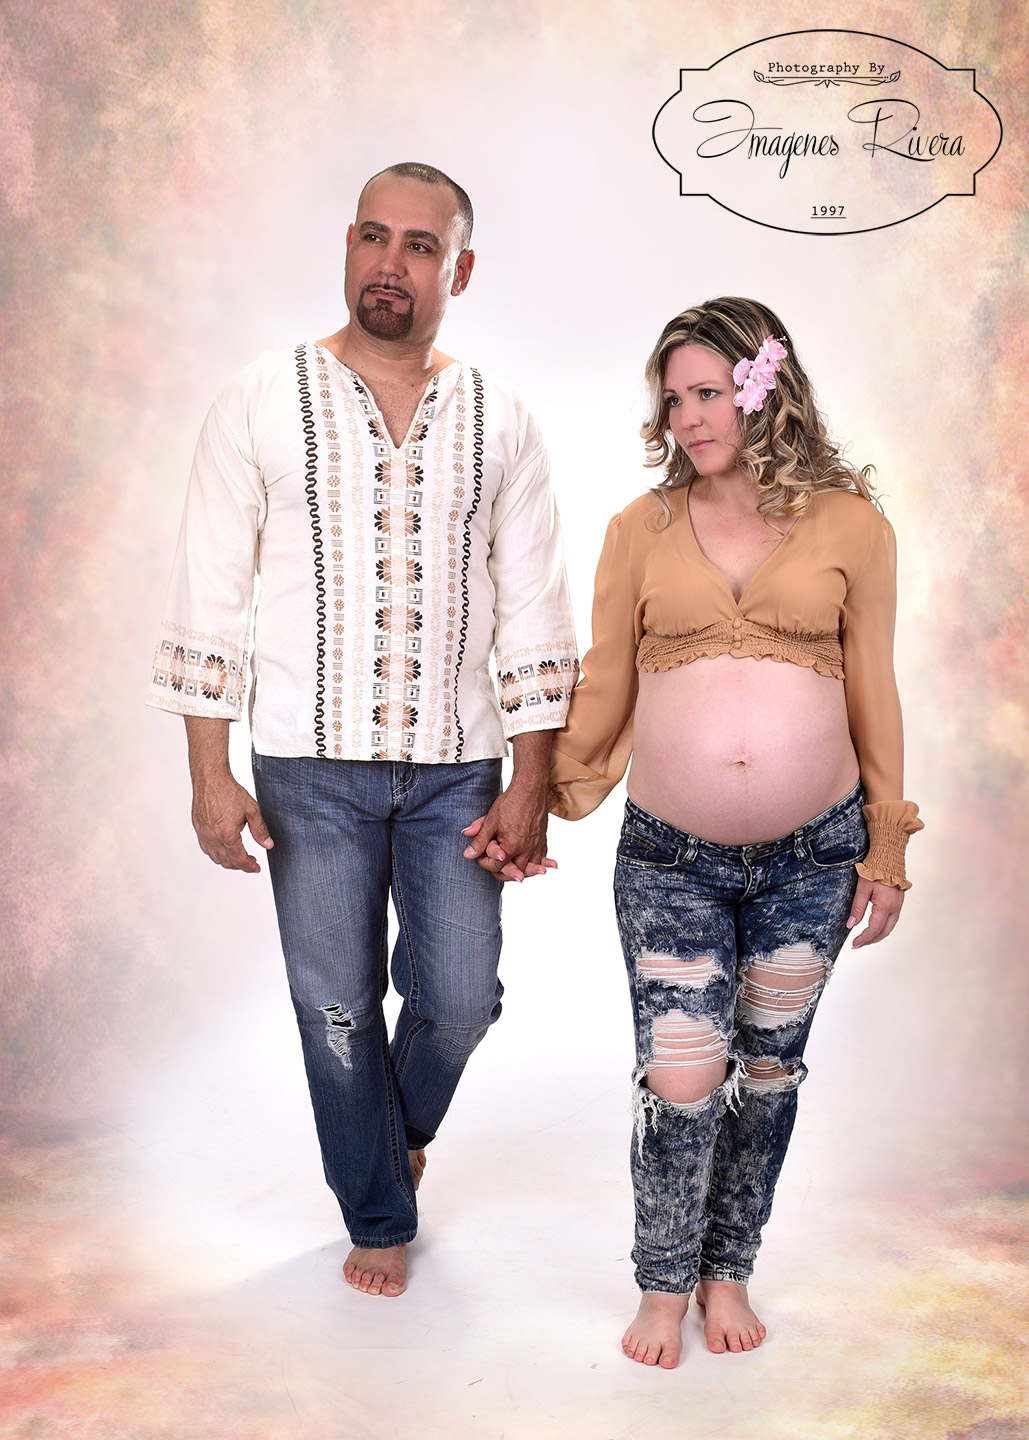 ♥ Rod Kirenia´s Maternity session in a Miami studio | Imagenes Rivera ♥